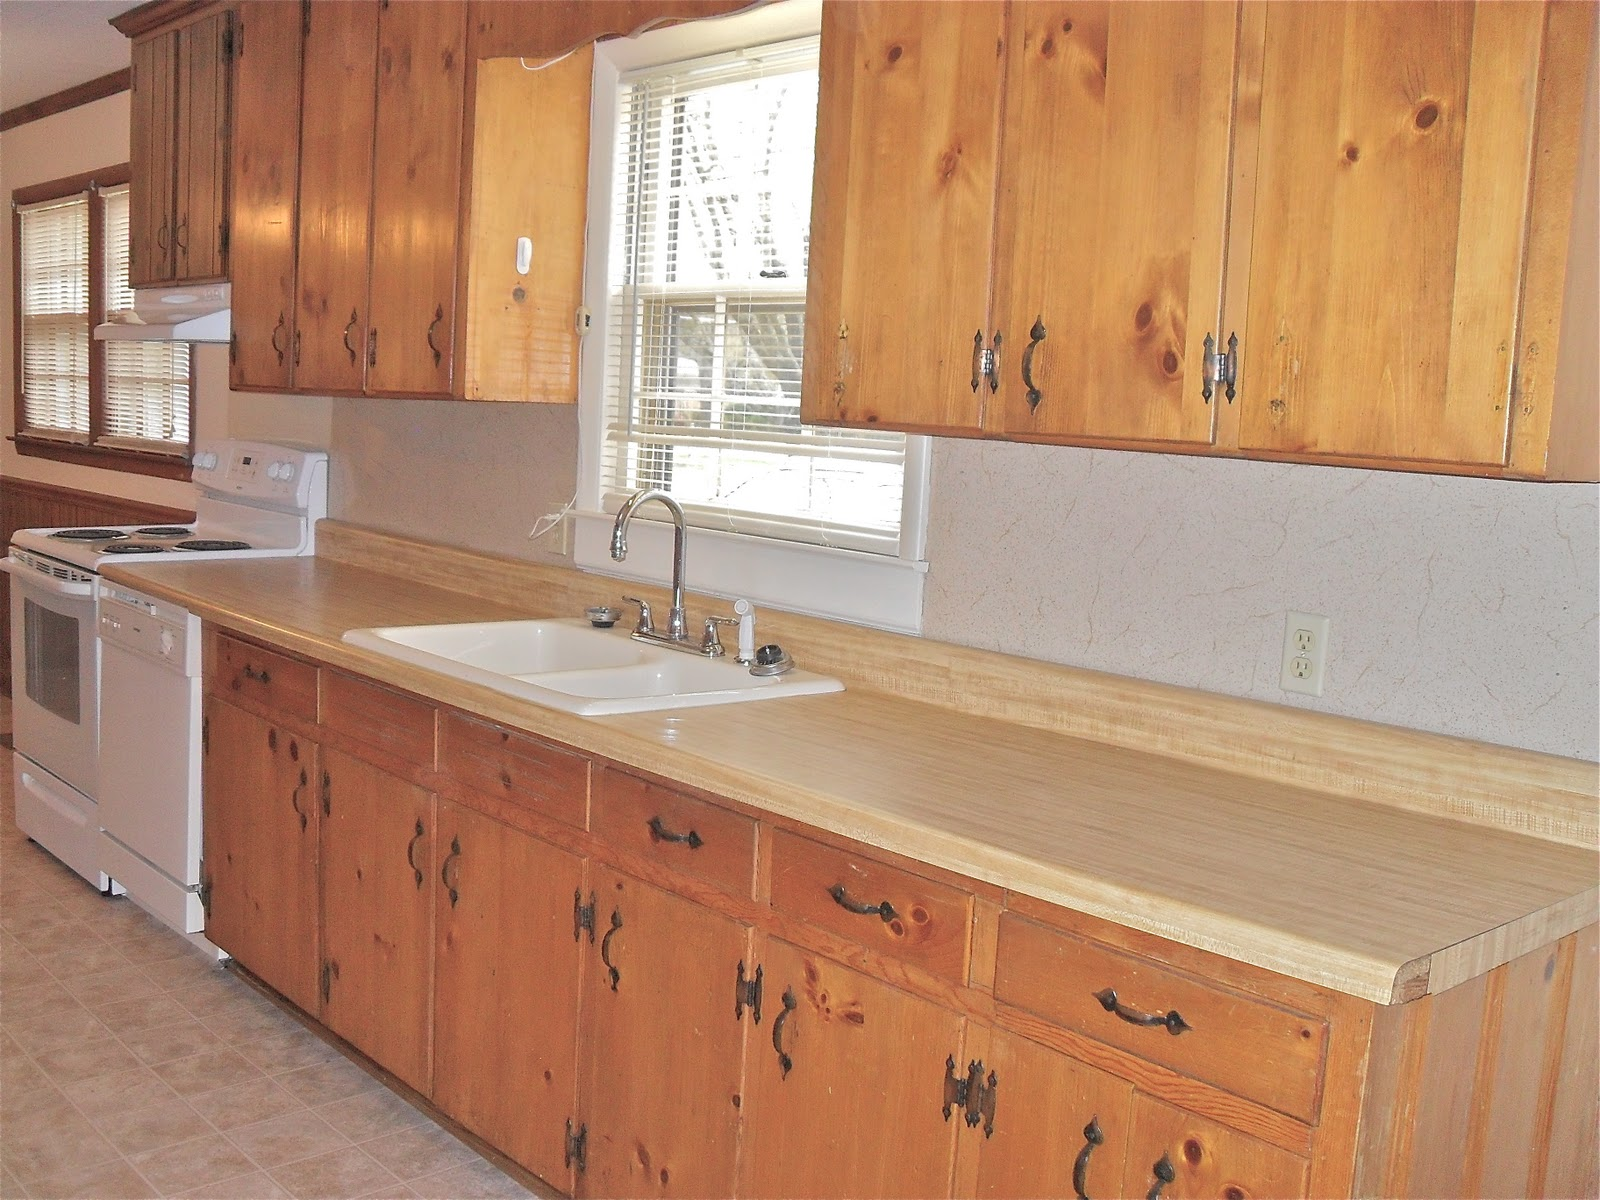 If You Look Closely You Can See The Cabinet Over The Stove Is Actually  Paneling Instead Of Real Wood   Tricky